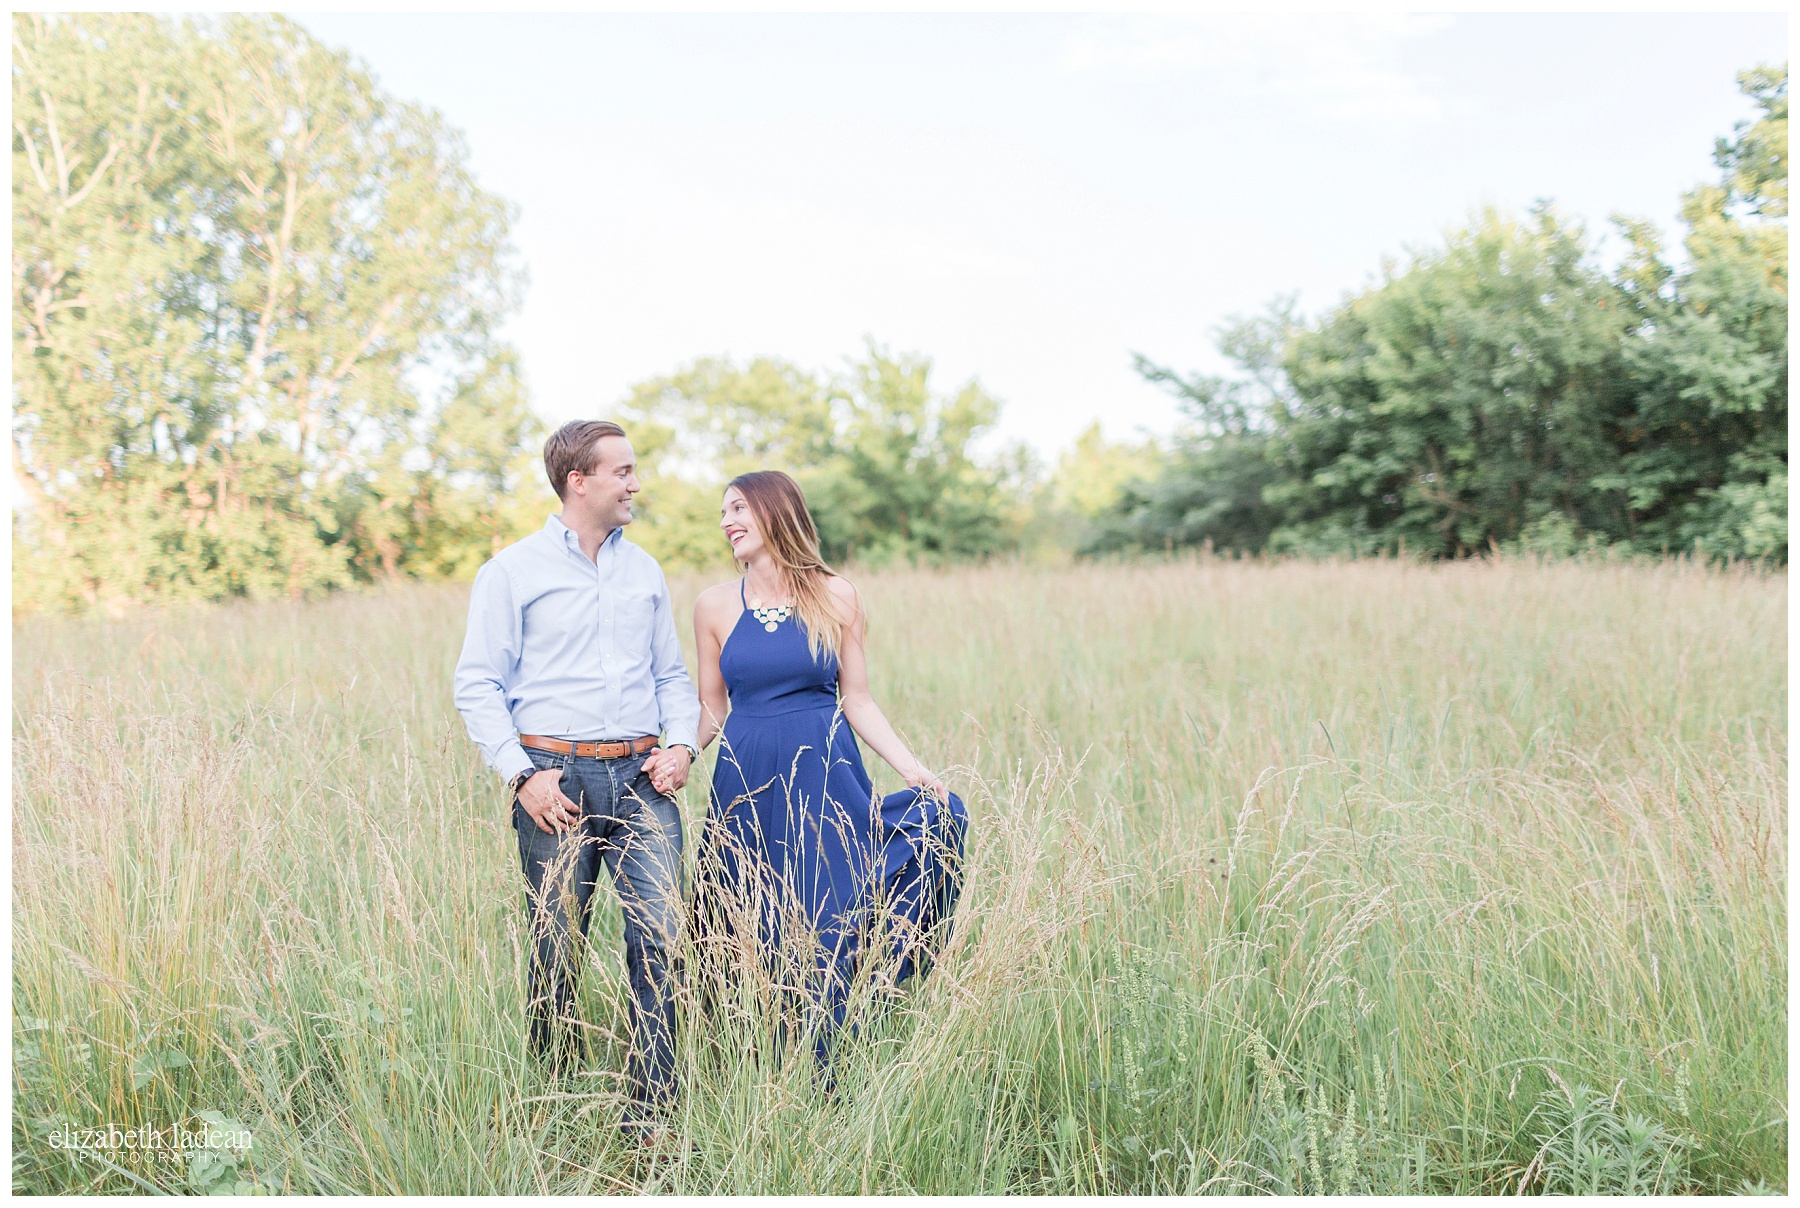 Weston-Bend-Kansas-City-Engagement-Photographer-C+A2017-Elizabeth-Ladean-Photography-photo_1169.jpg